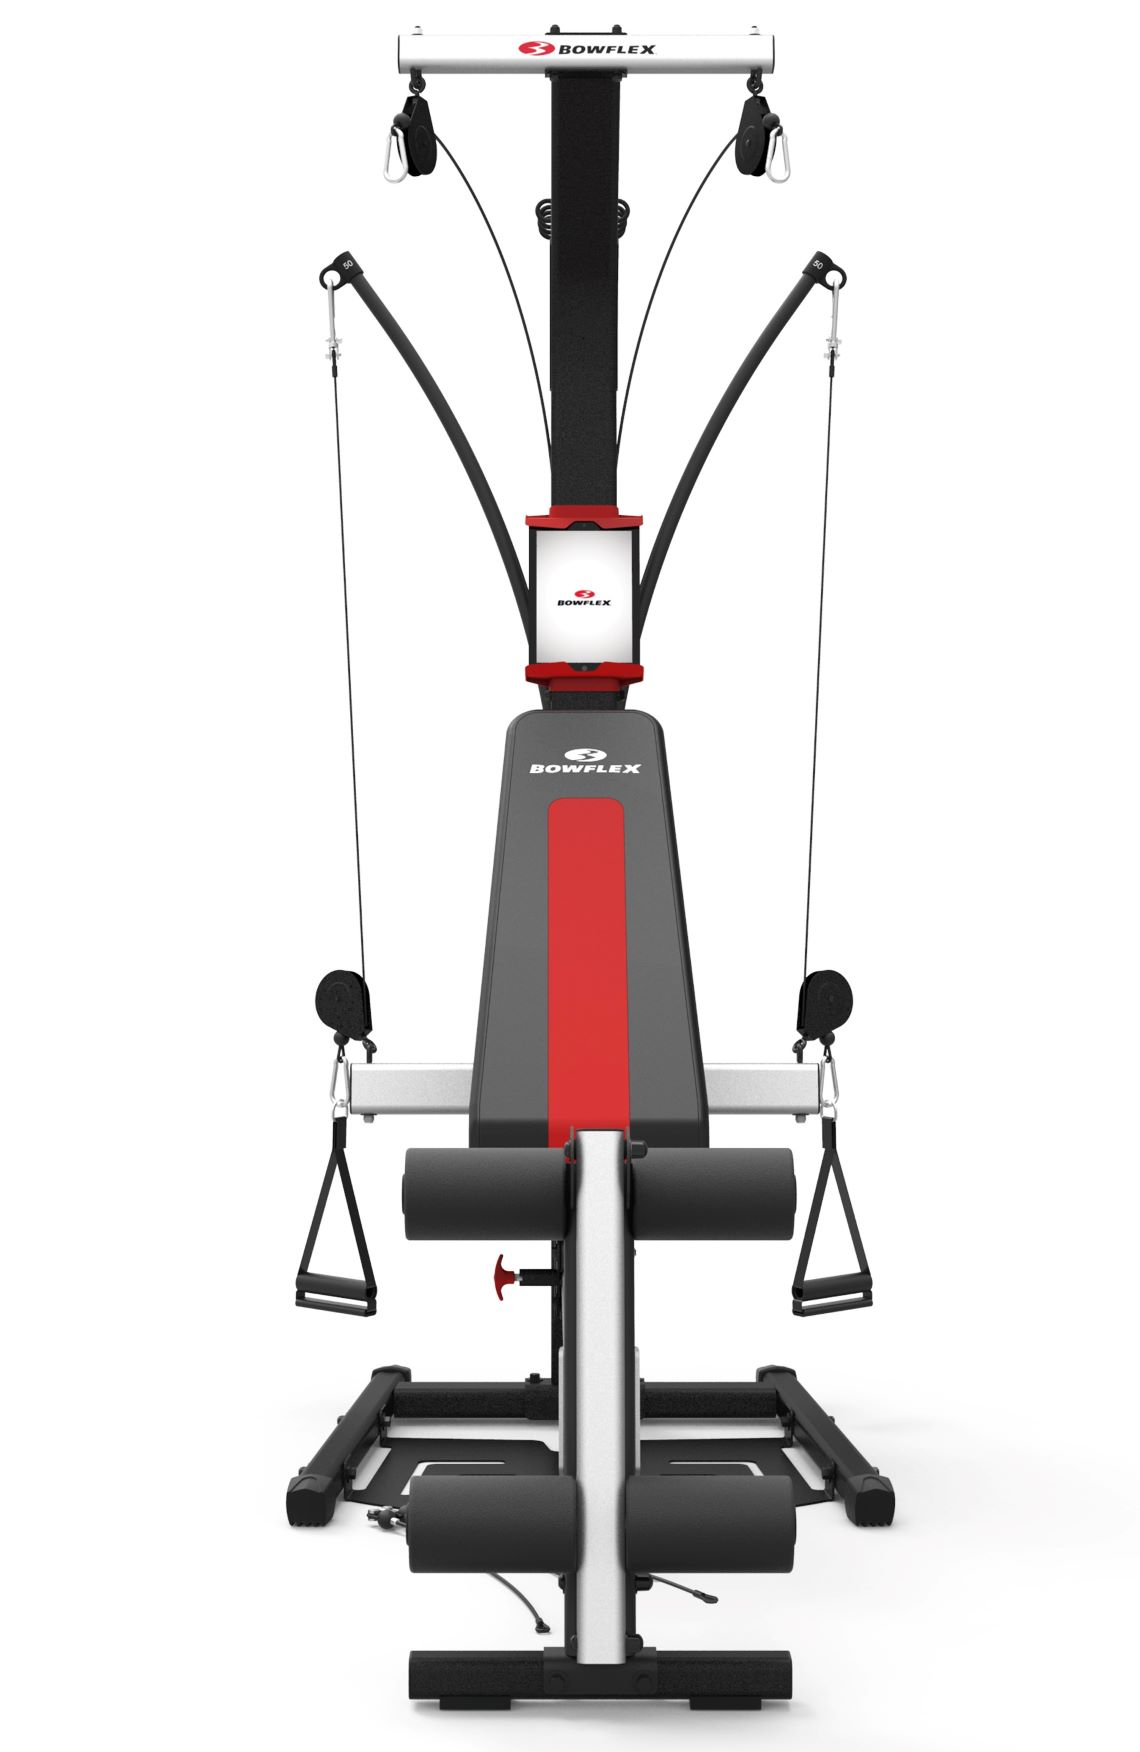 Bowflex PR1000 functionality and workouts